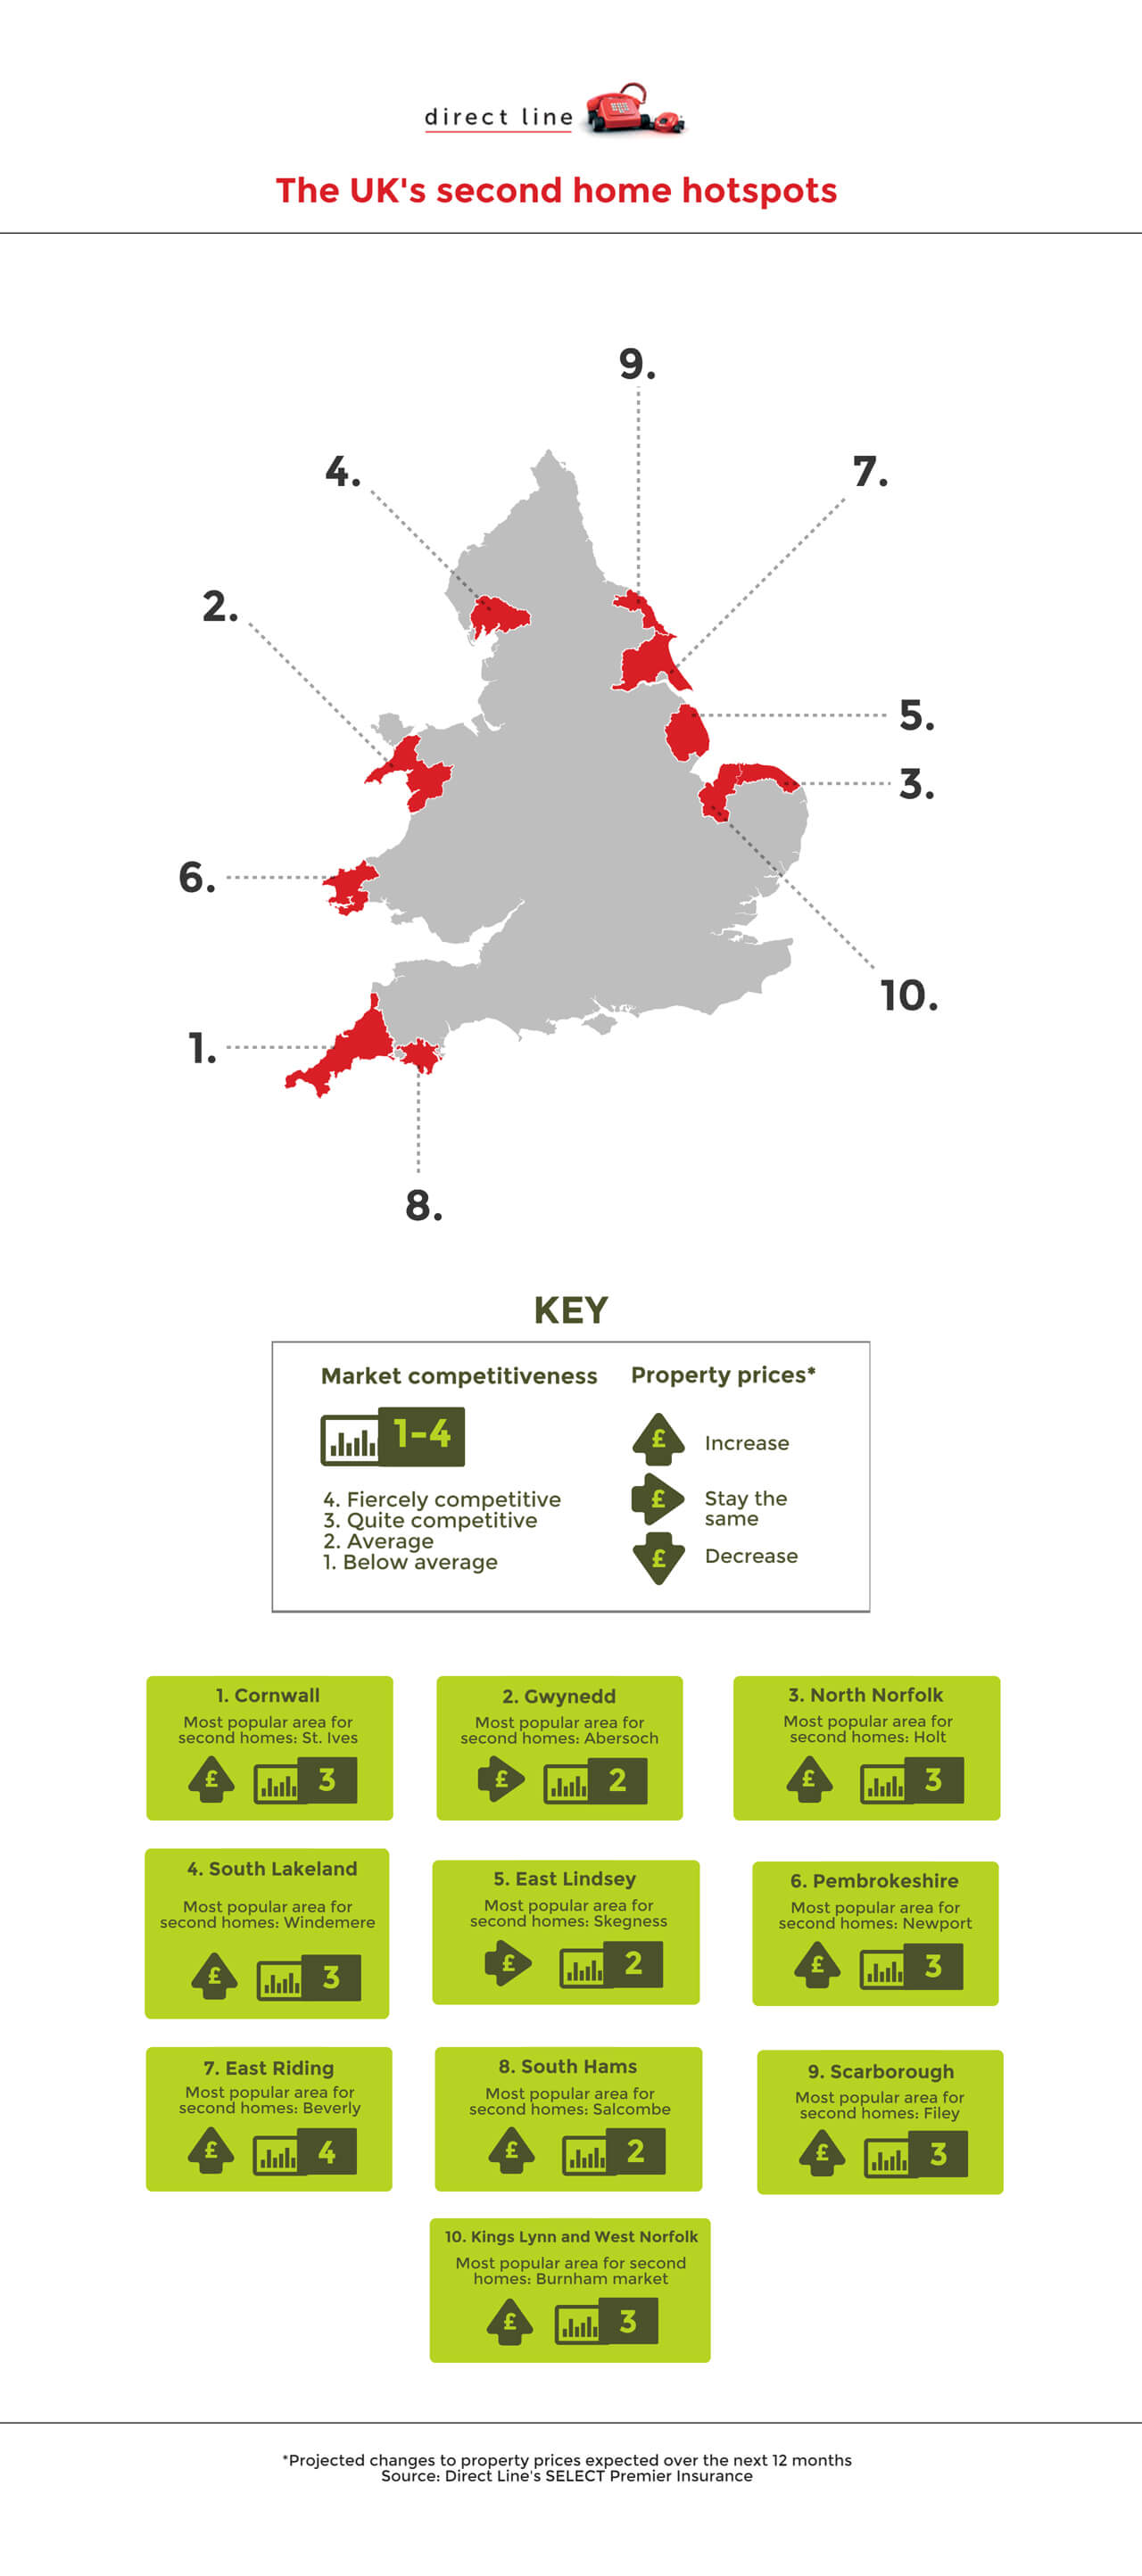 Top UK locations for second homes